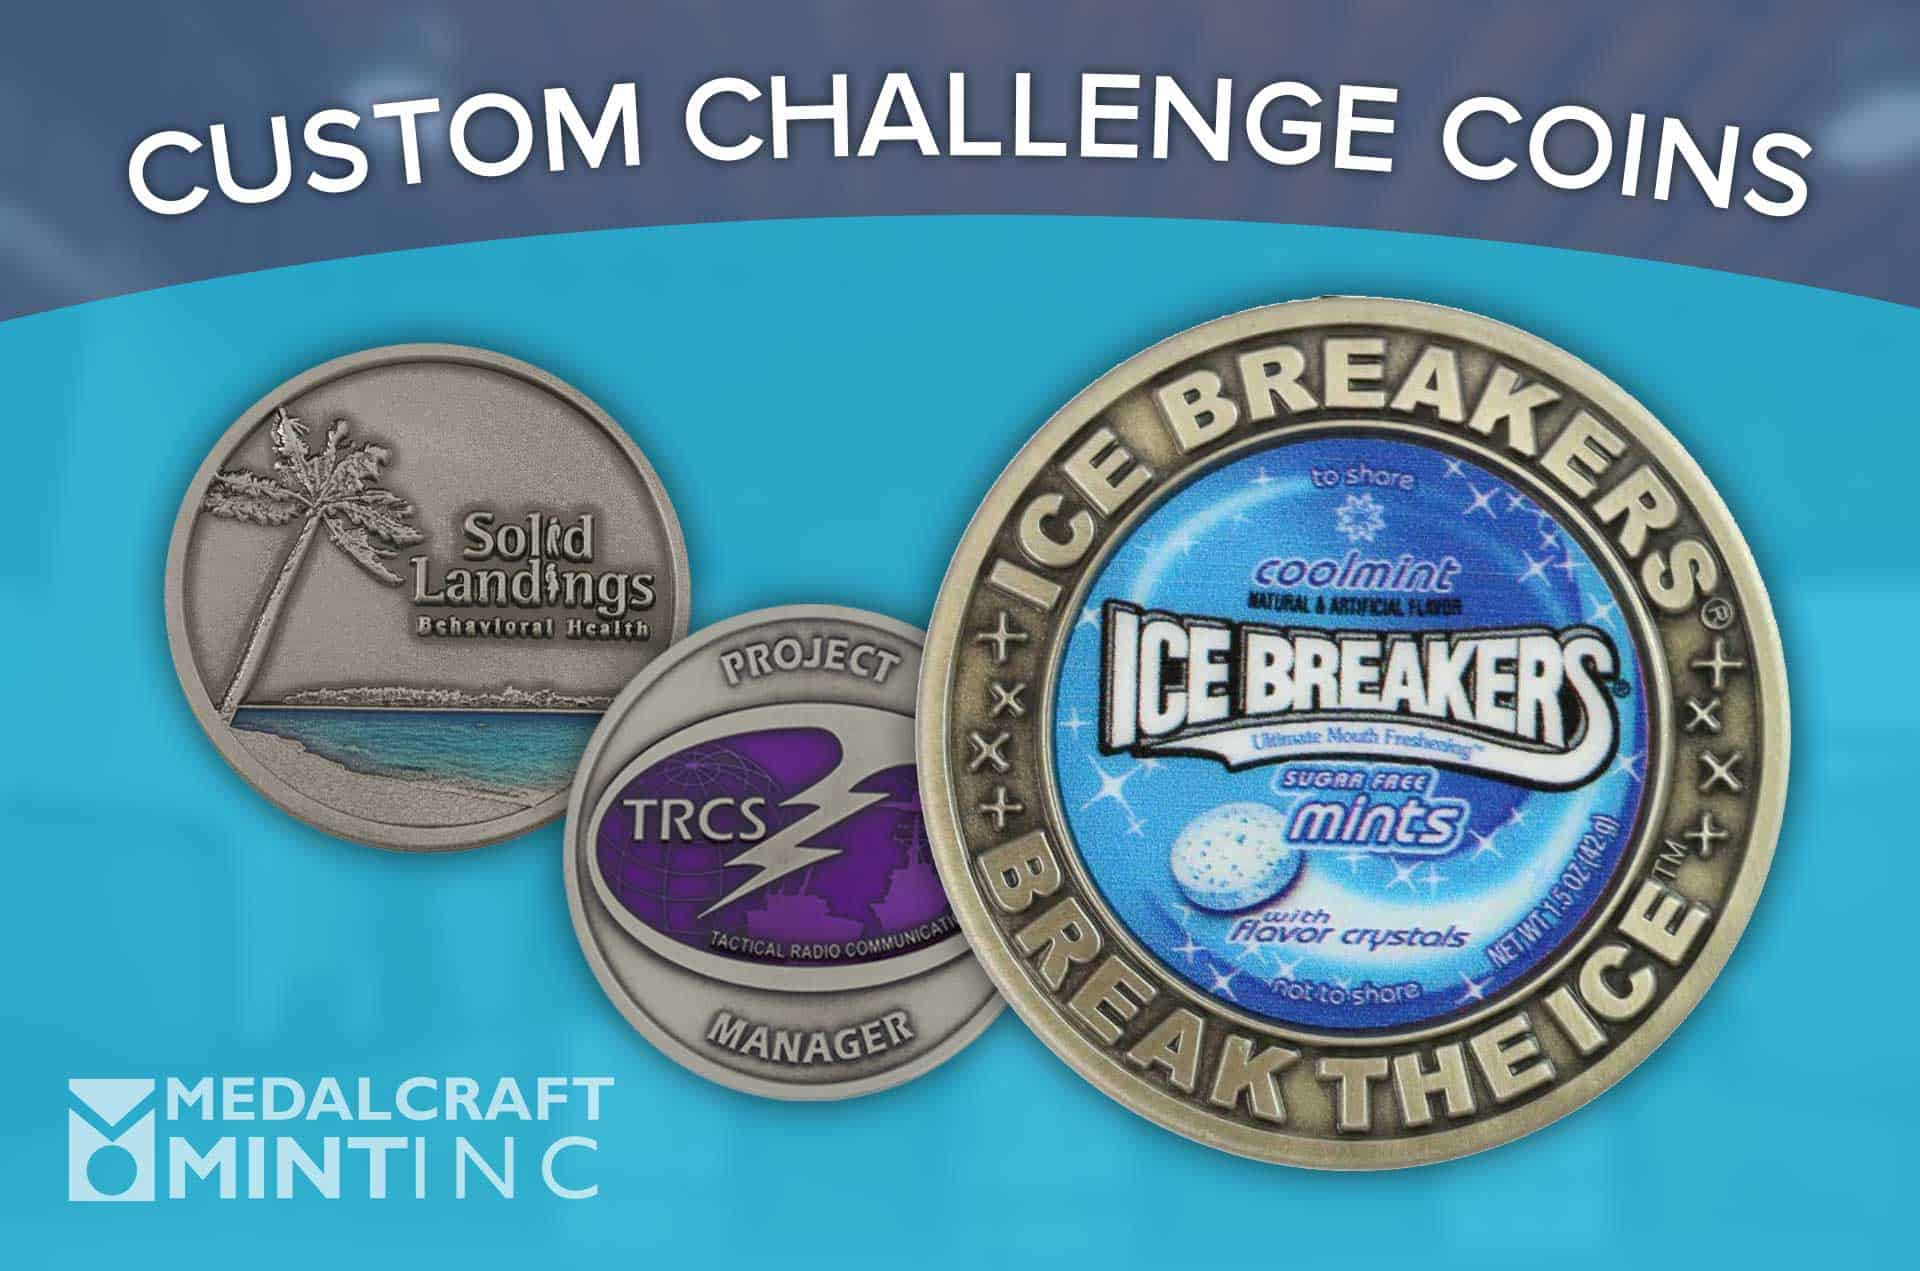 Join the challenge coin revolution